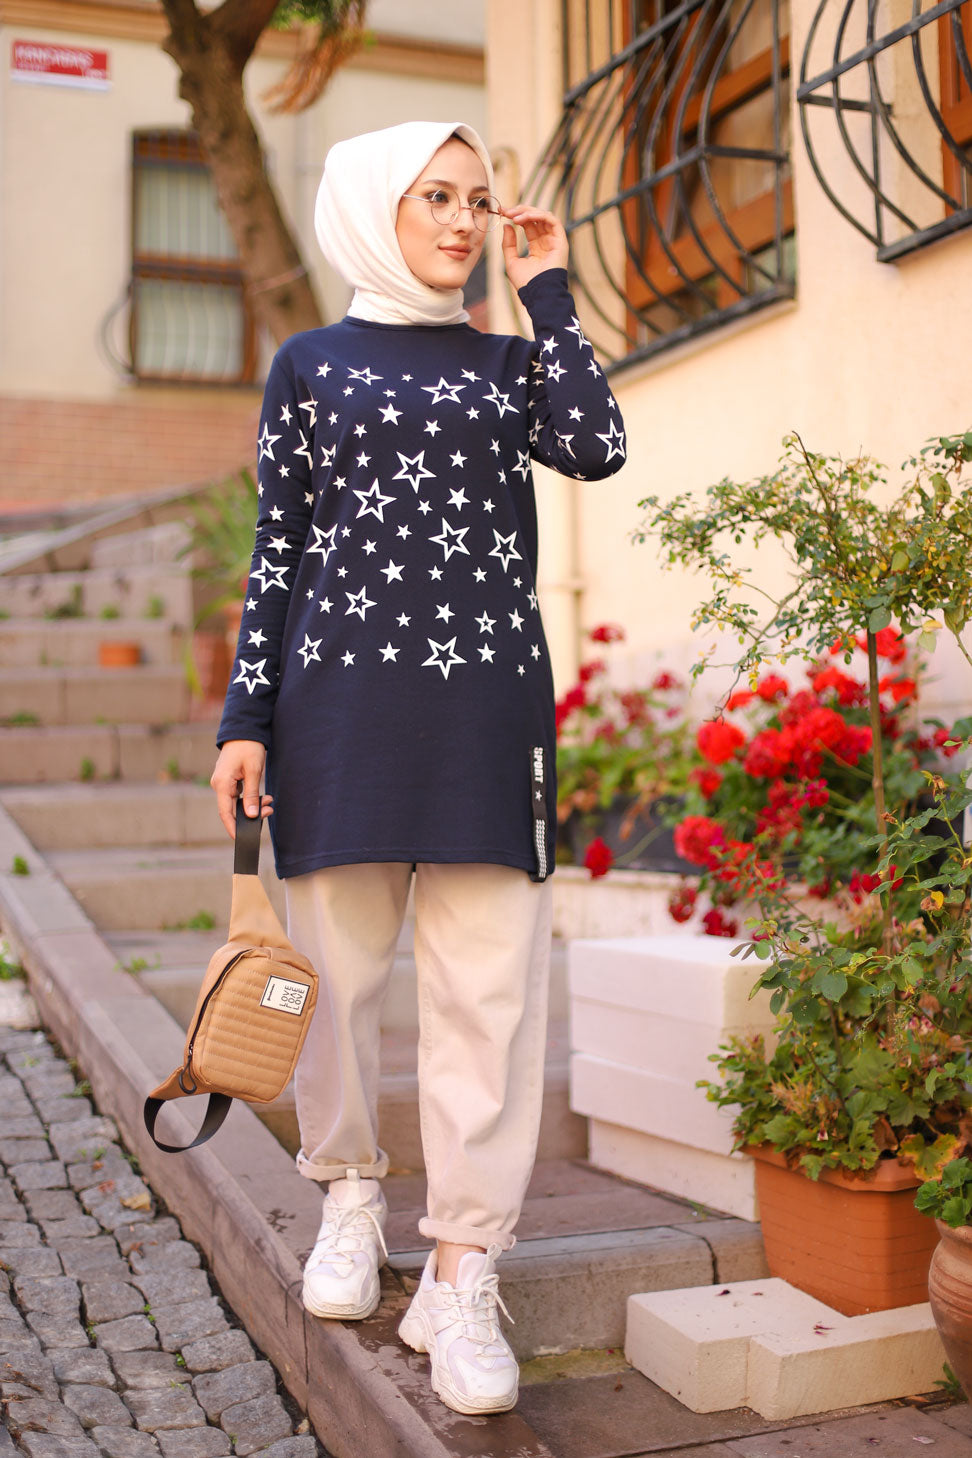 Tunic Star Printed Black - 8385